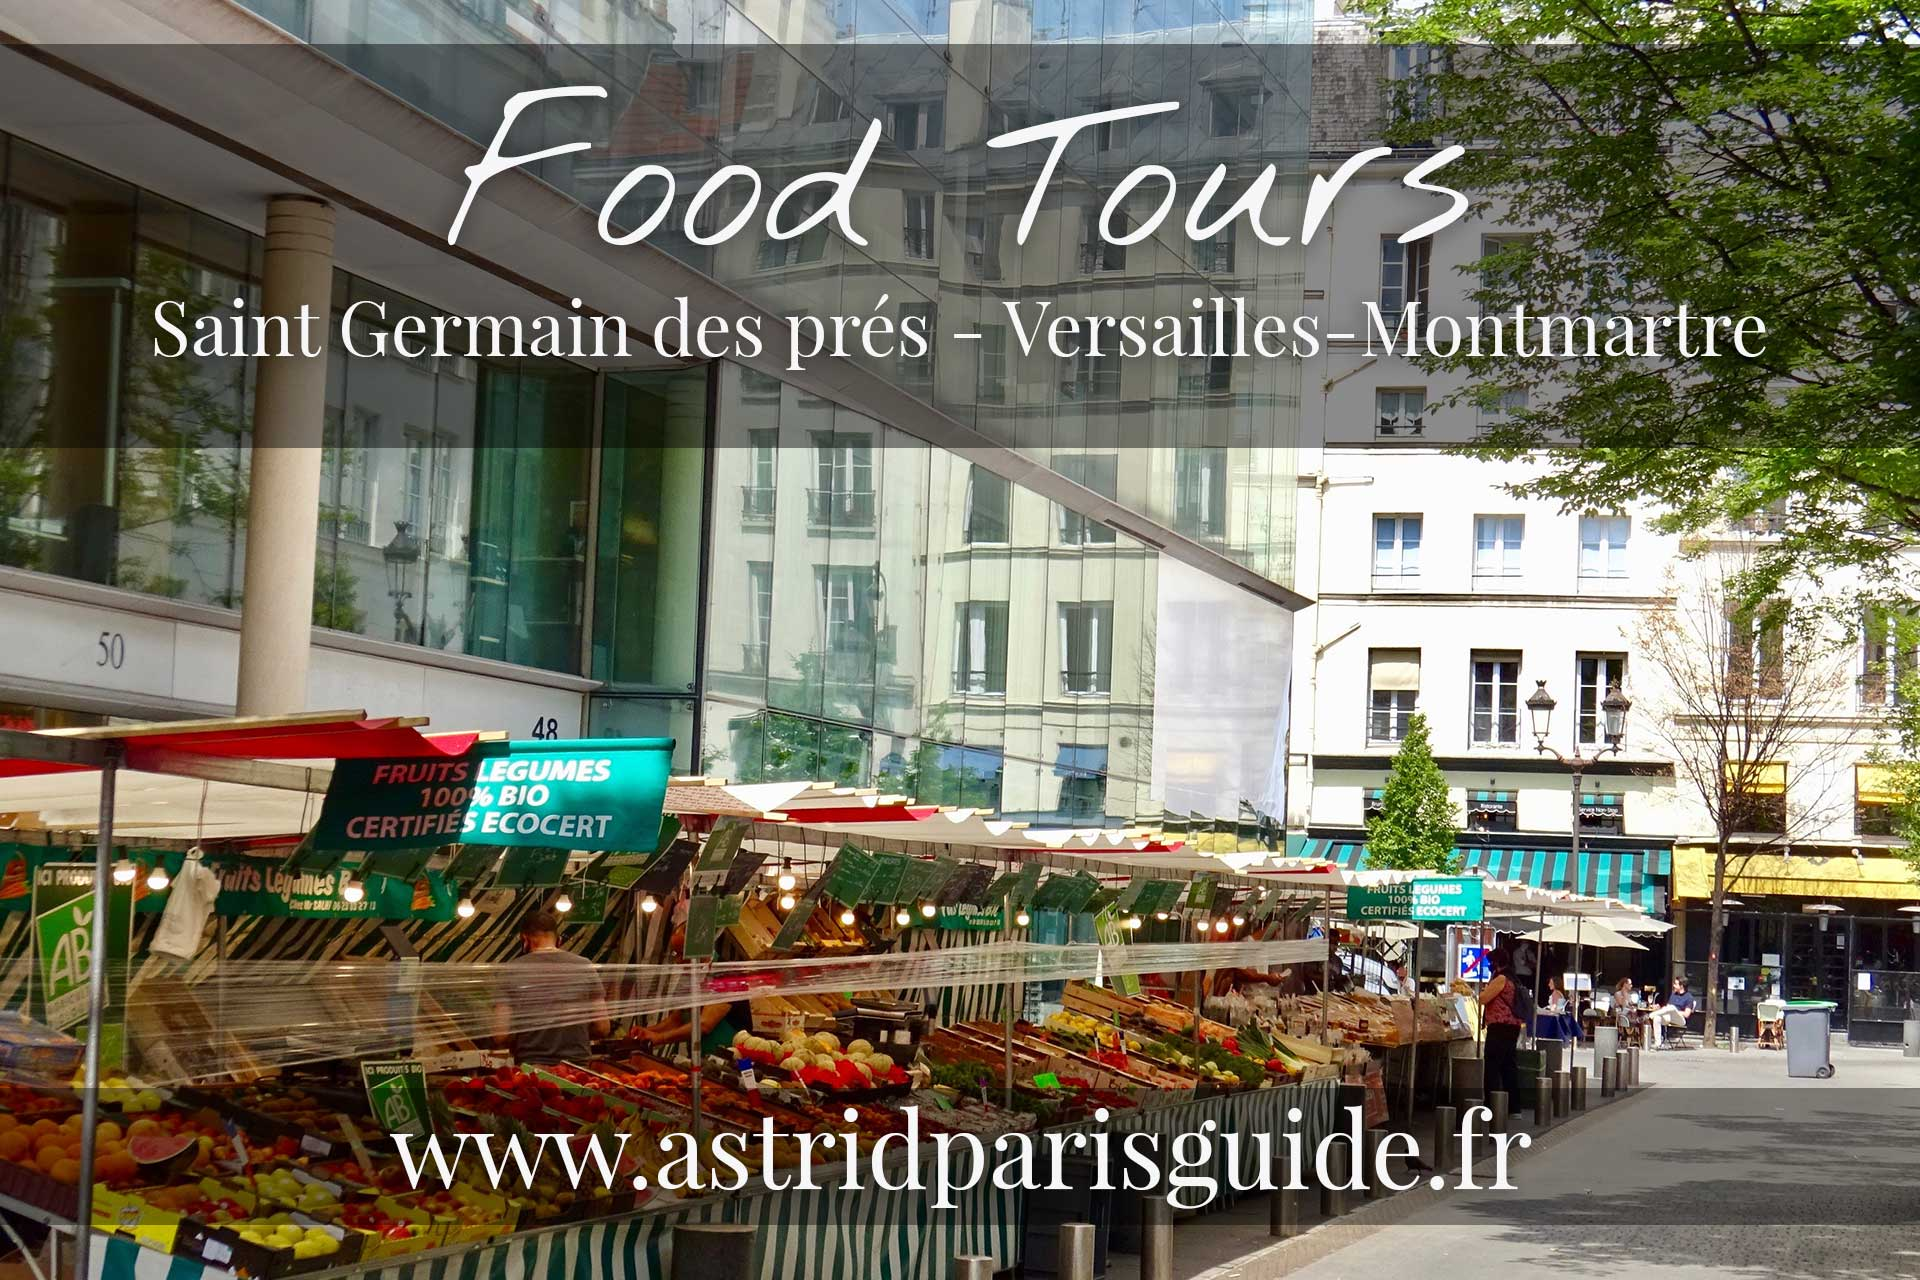 formule food tour visite paris guide